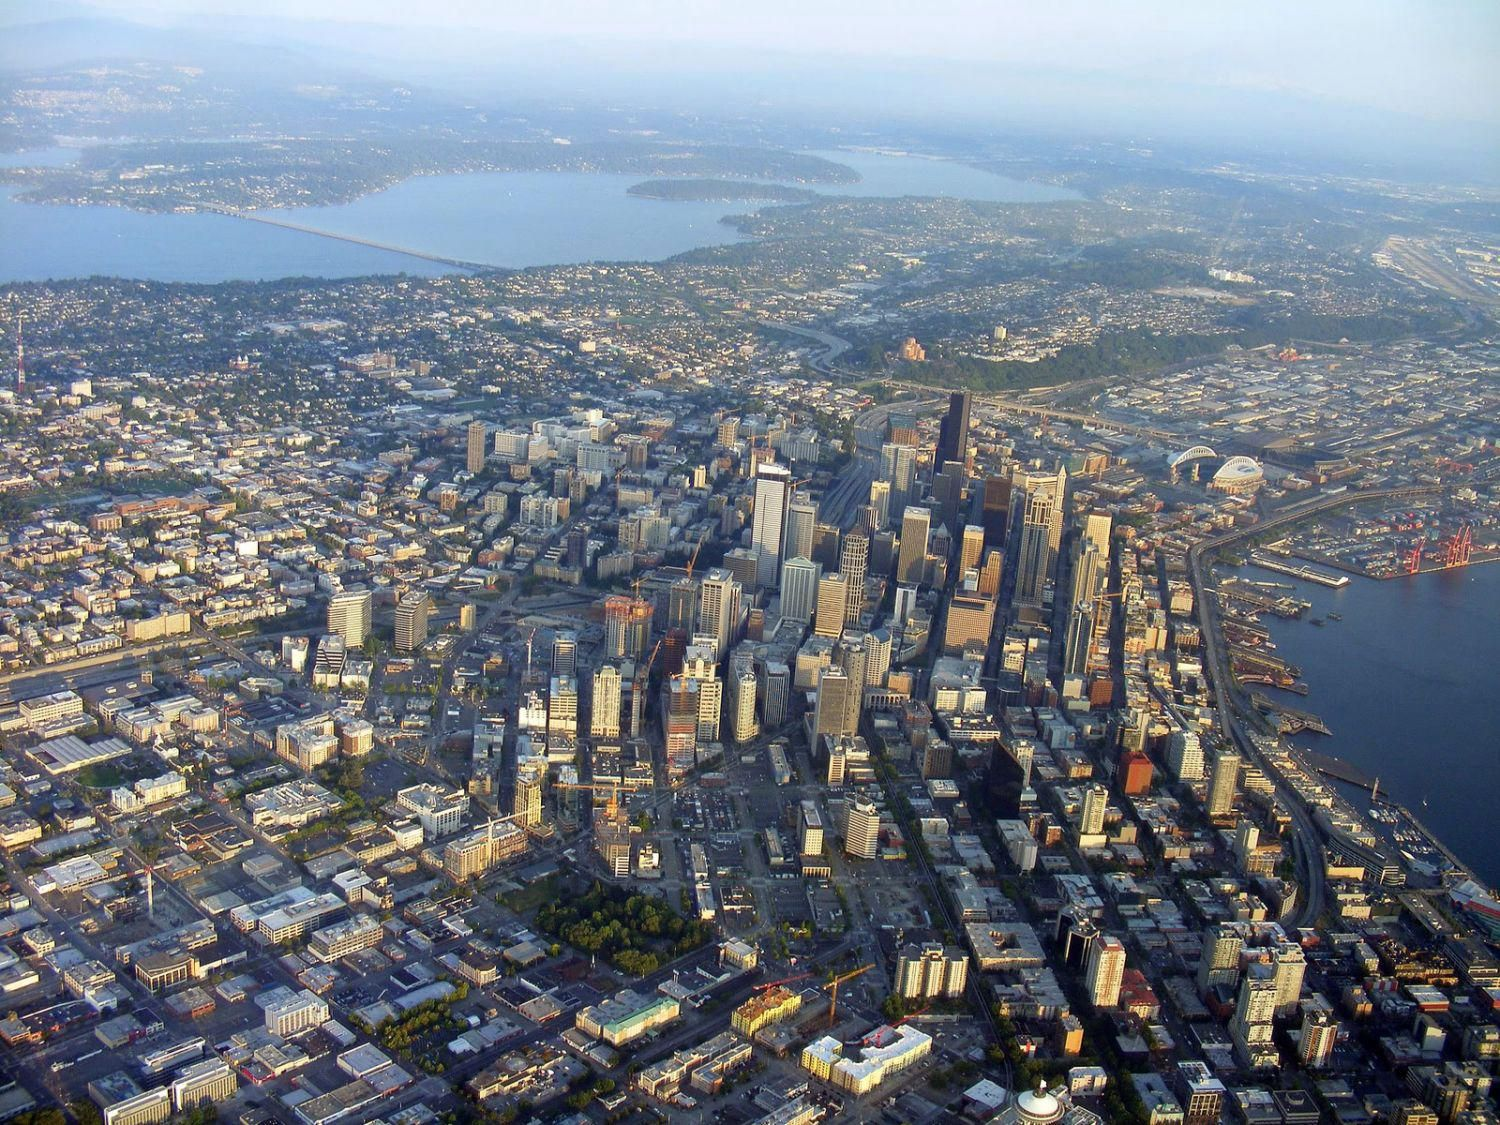 Gay Seattle Guide - Gay Bars & Clubs, Hotels, Reviews and Deals ...: www.gaytravel.com/gay-guides/seattle